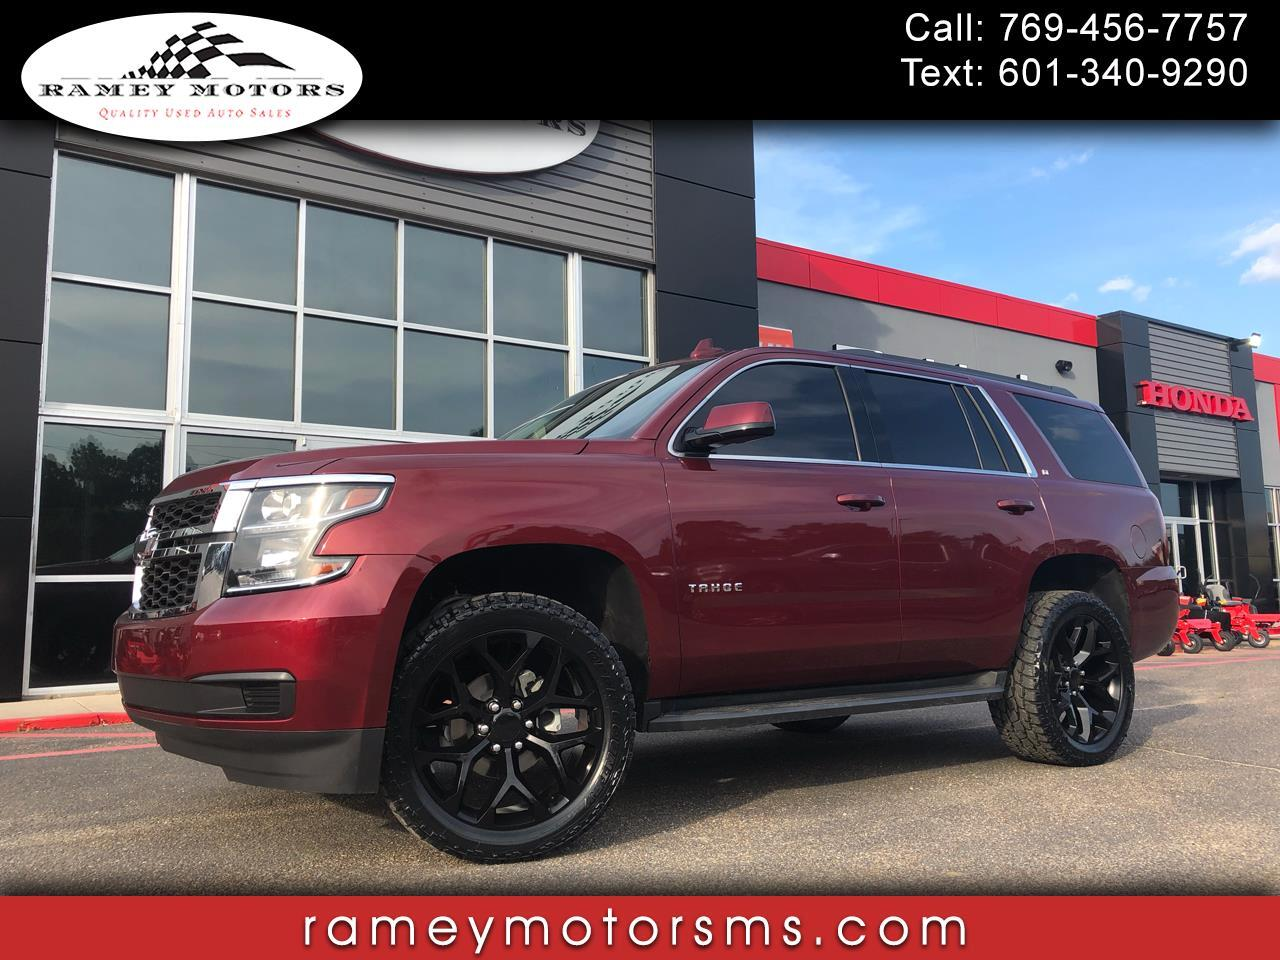 2017 Chevrolet Tahoe LT w/2LT CUSTOM LEVELED